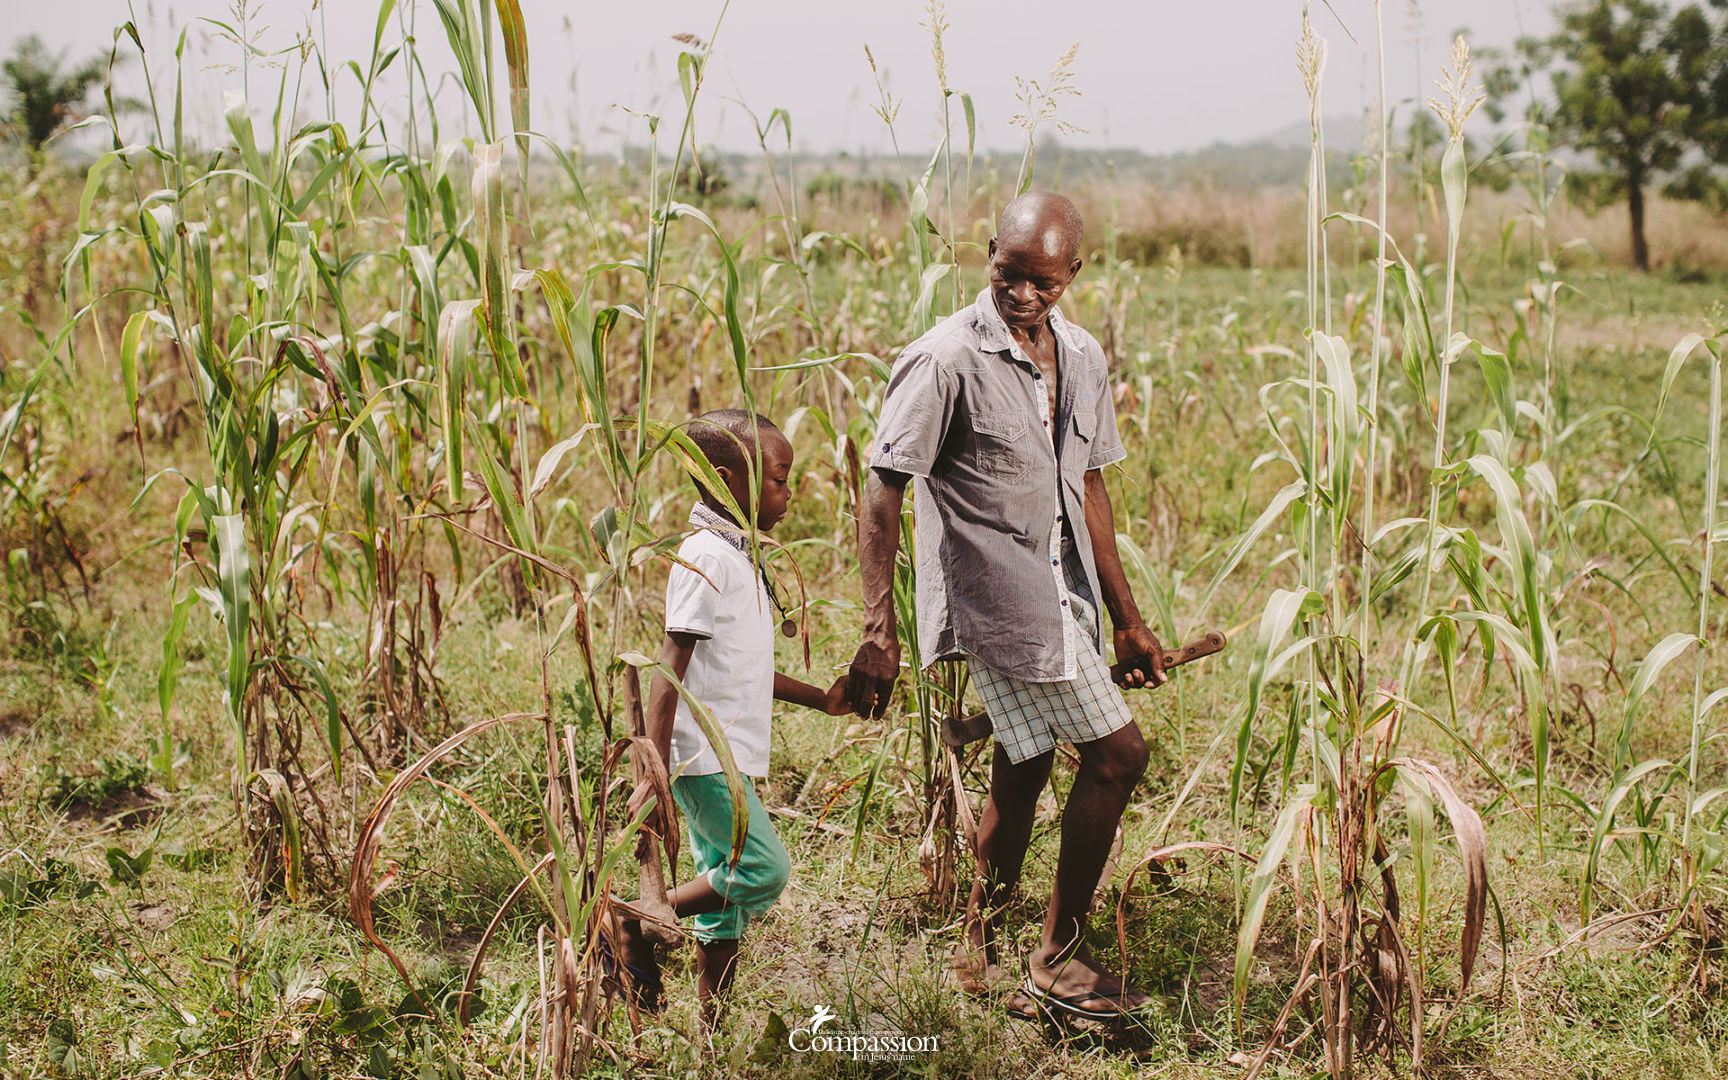 Laurent and Bamely walk through a corn field